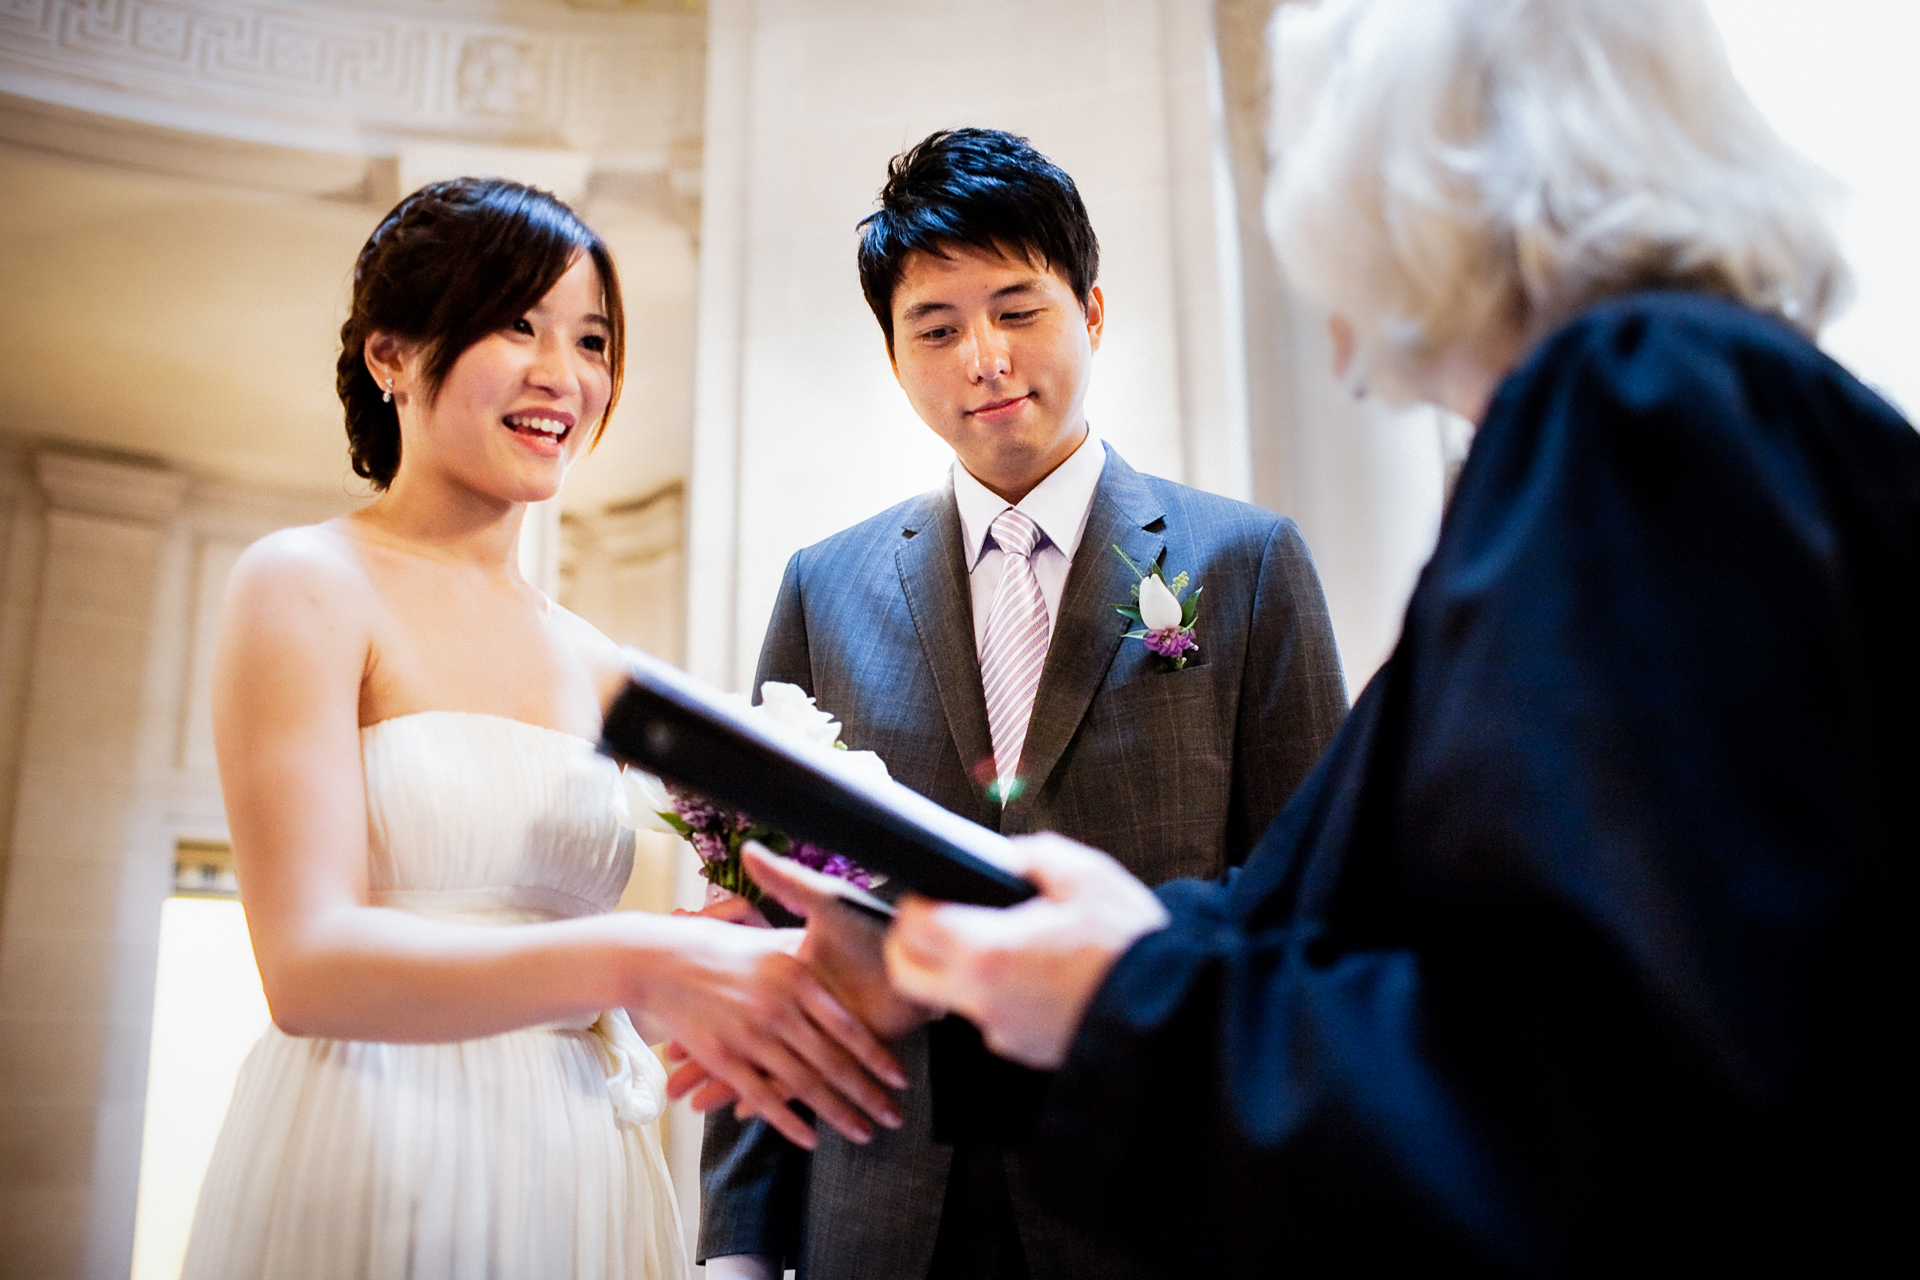 Elopement Photographers for San Francisco City Hall | A handshake with the officiant